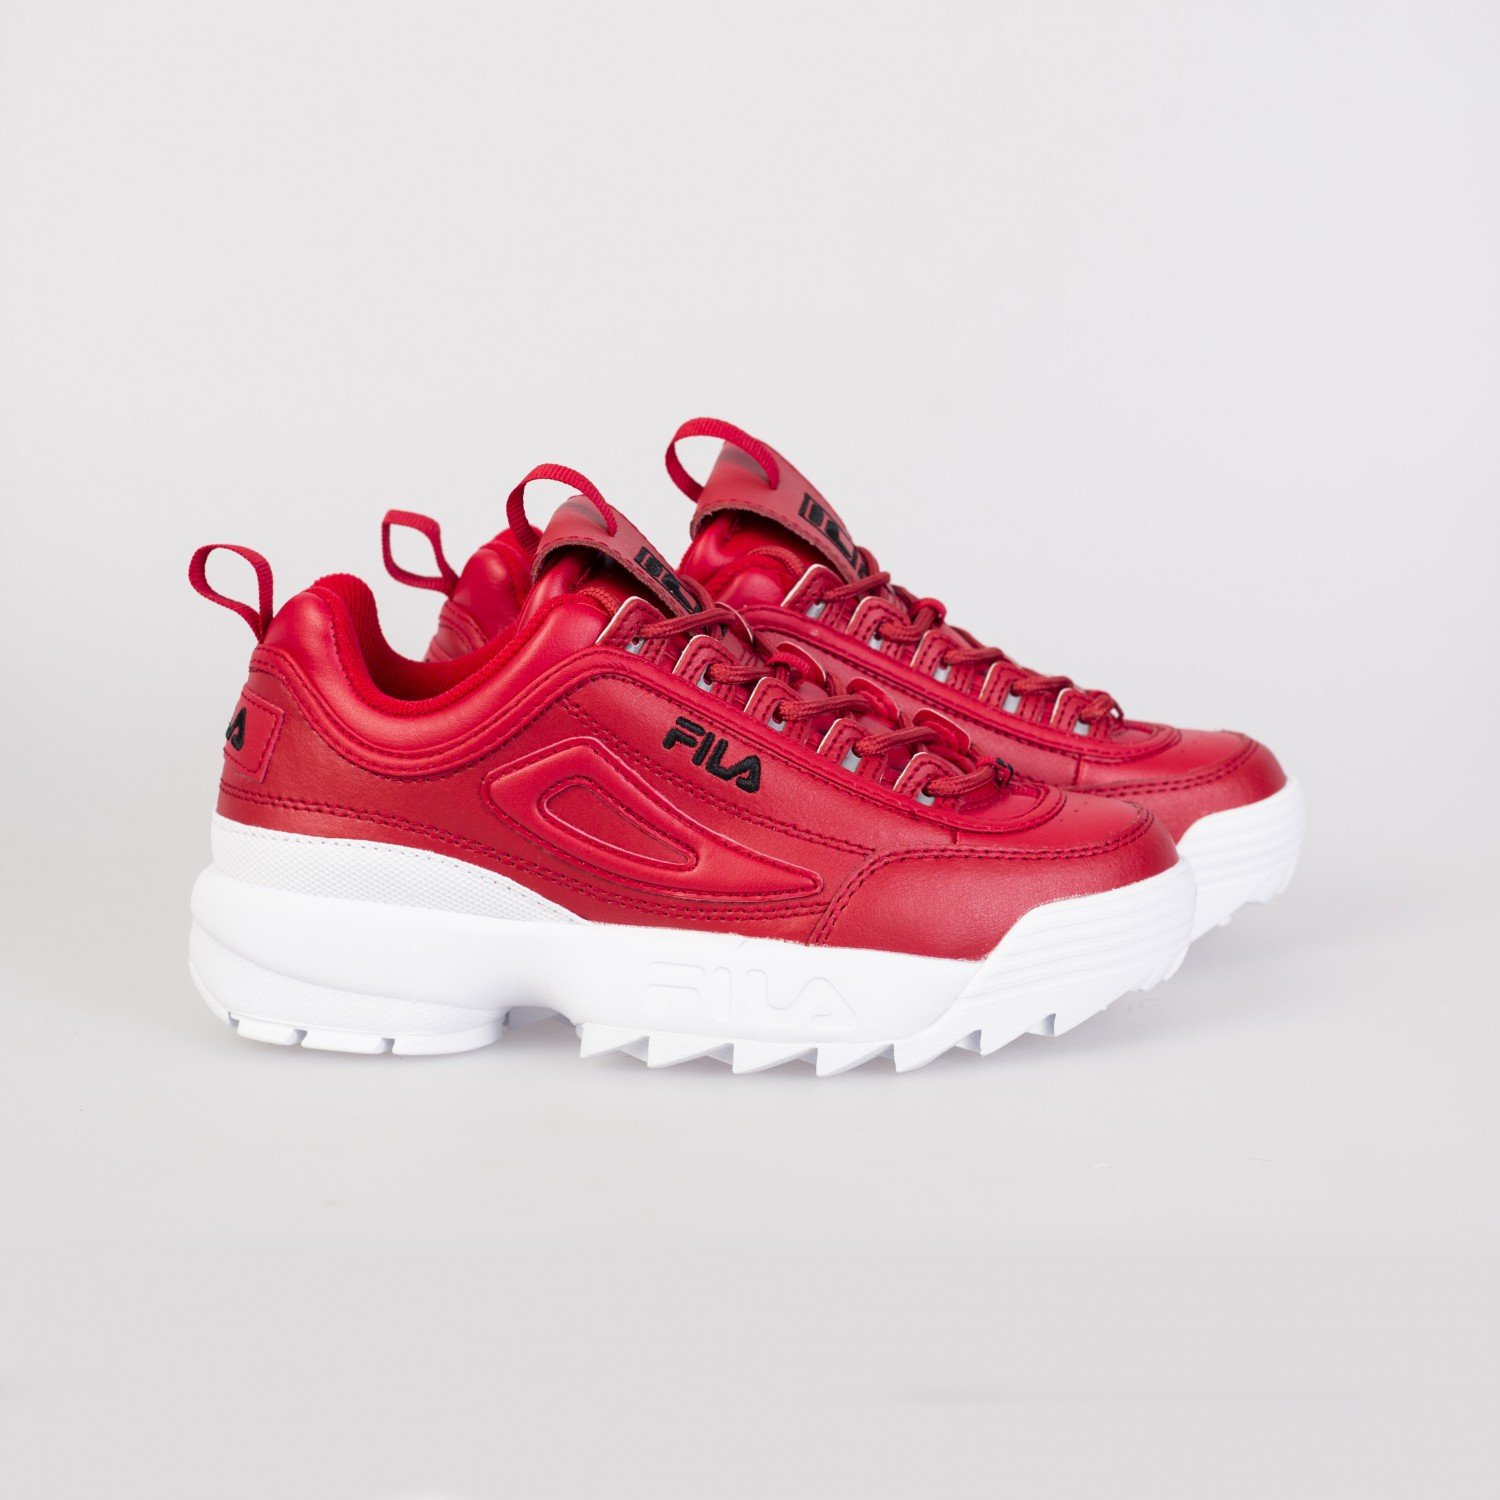 Кроссовки женские FILA - Disruptor II Premium Red/Black/White